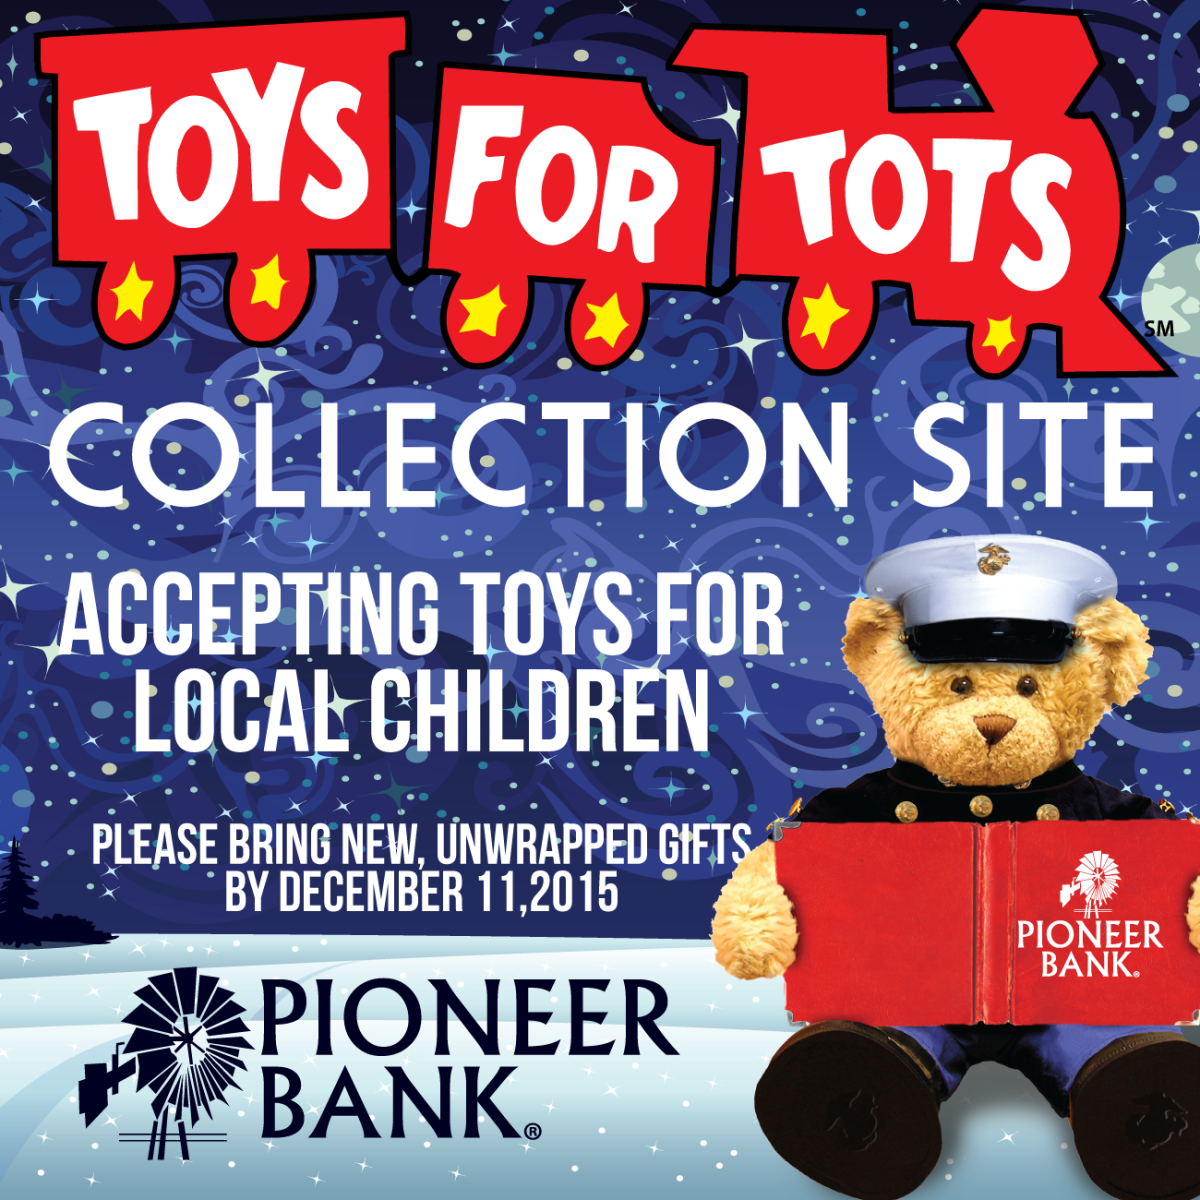 Toys for tots images  Pin by Pioneer Bank on Events  Pinterest  Marines